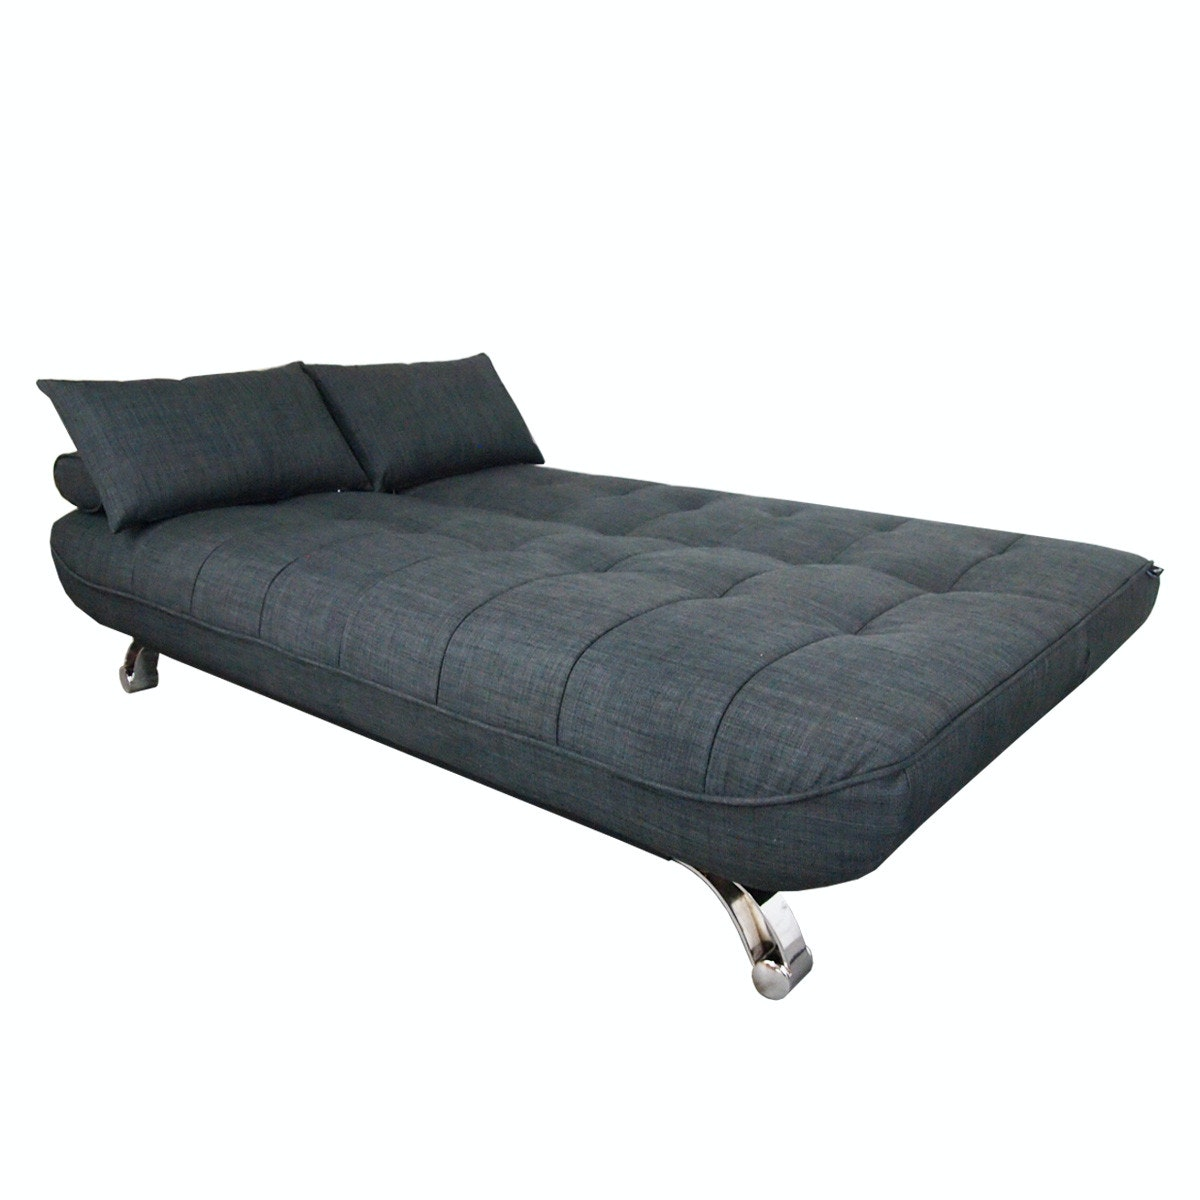 Clifford 3 Seater Sofa Bed   Grey   Image 2 ...